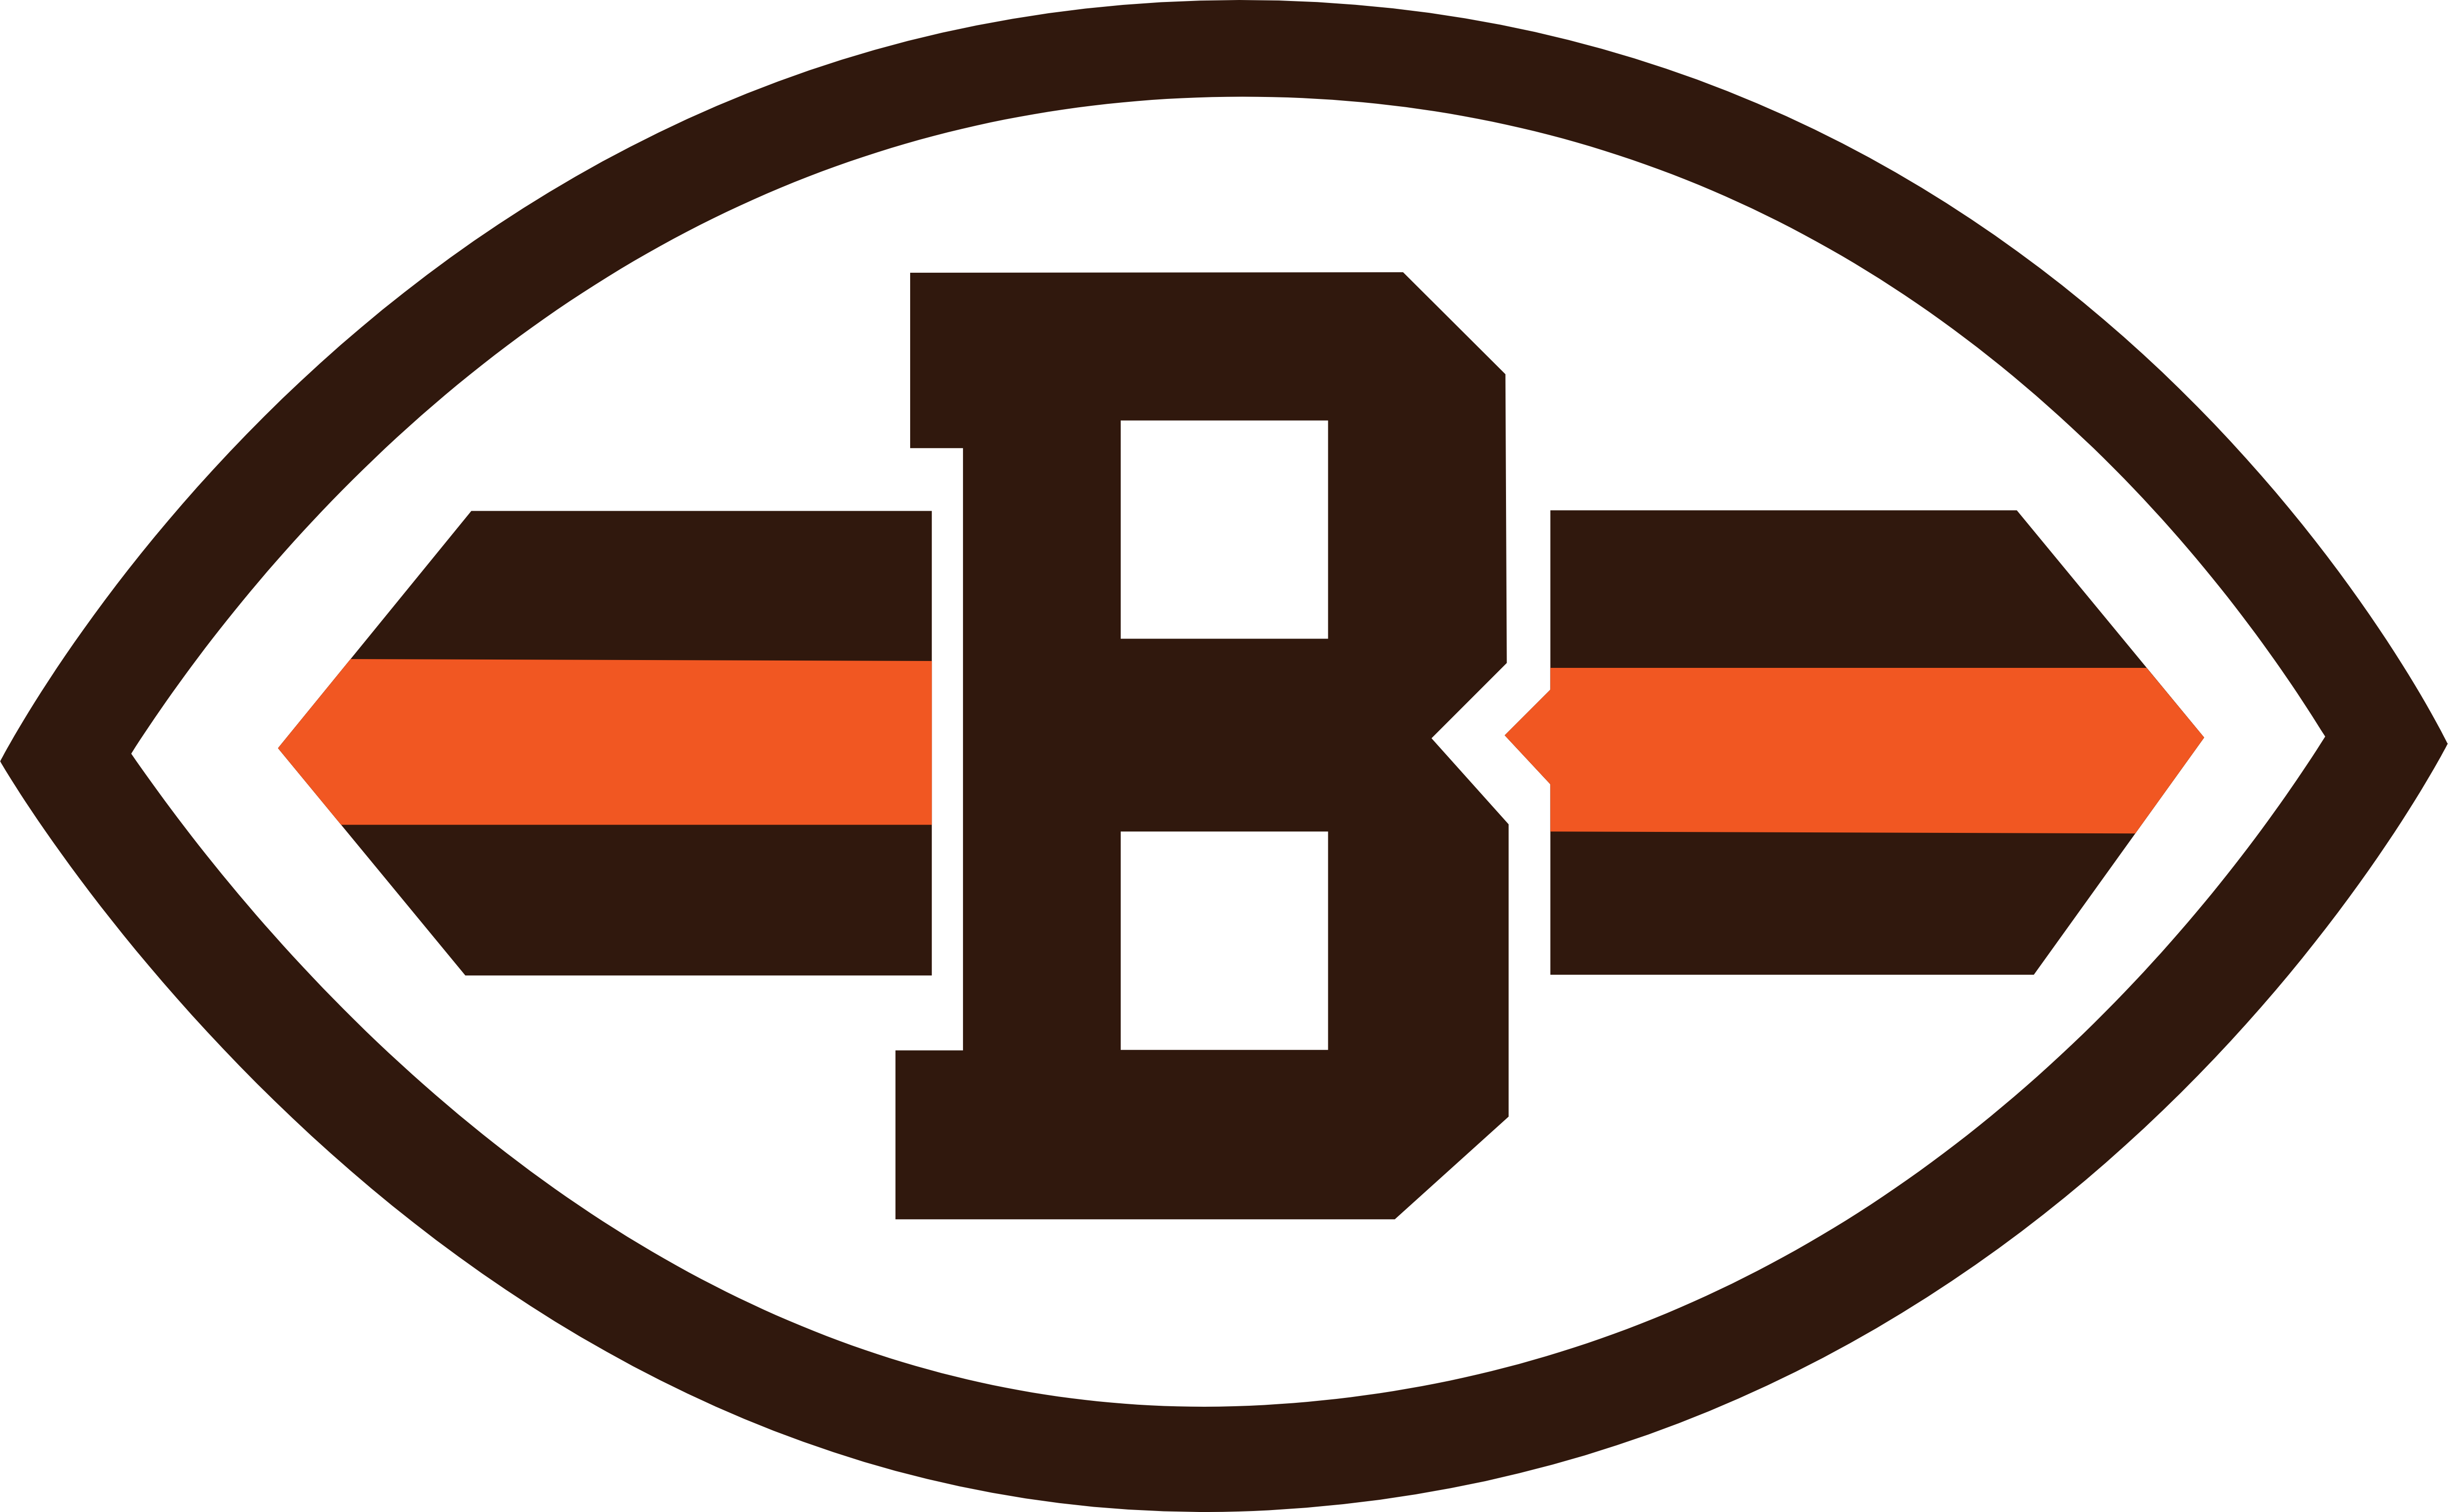 Cleveland Browns - Logos Download